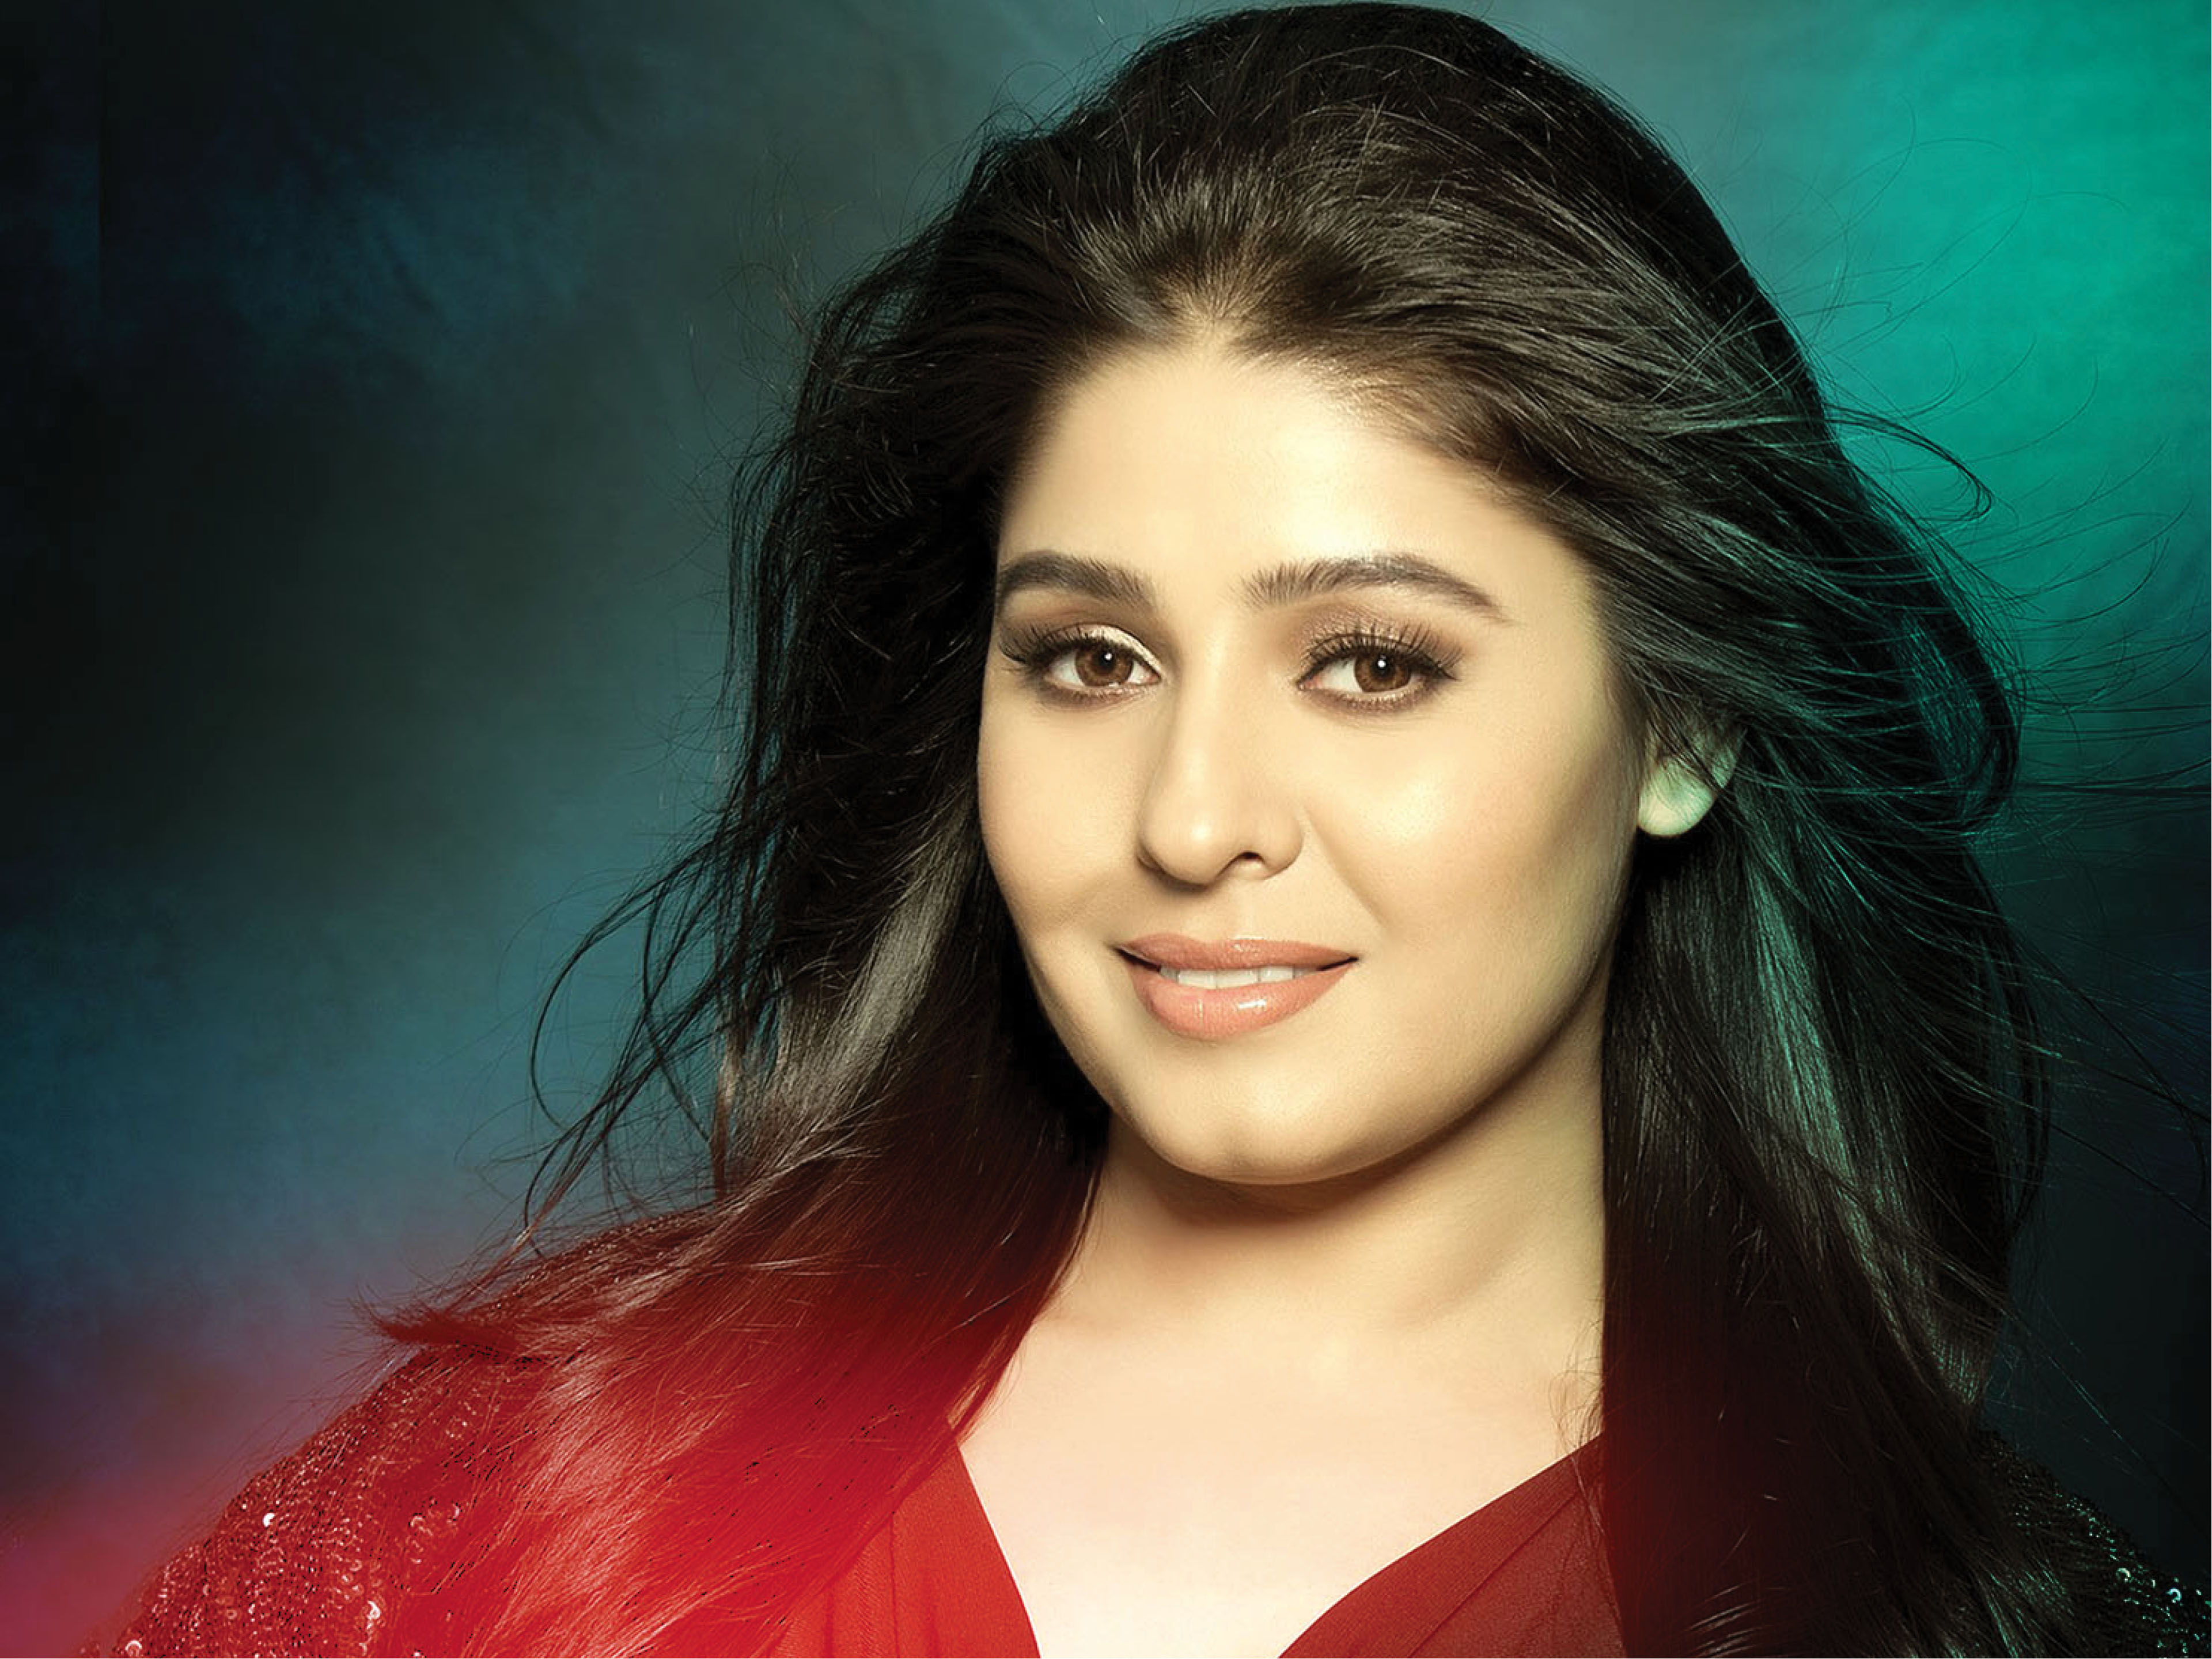 Sunidhi chauhan images 60